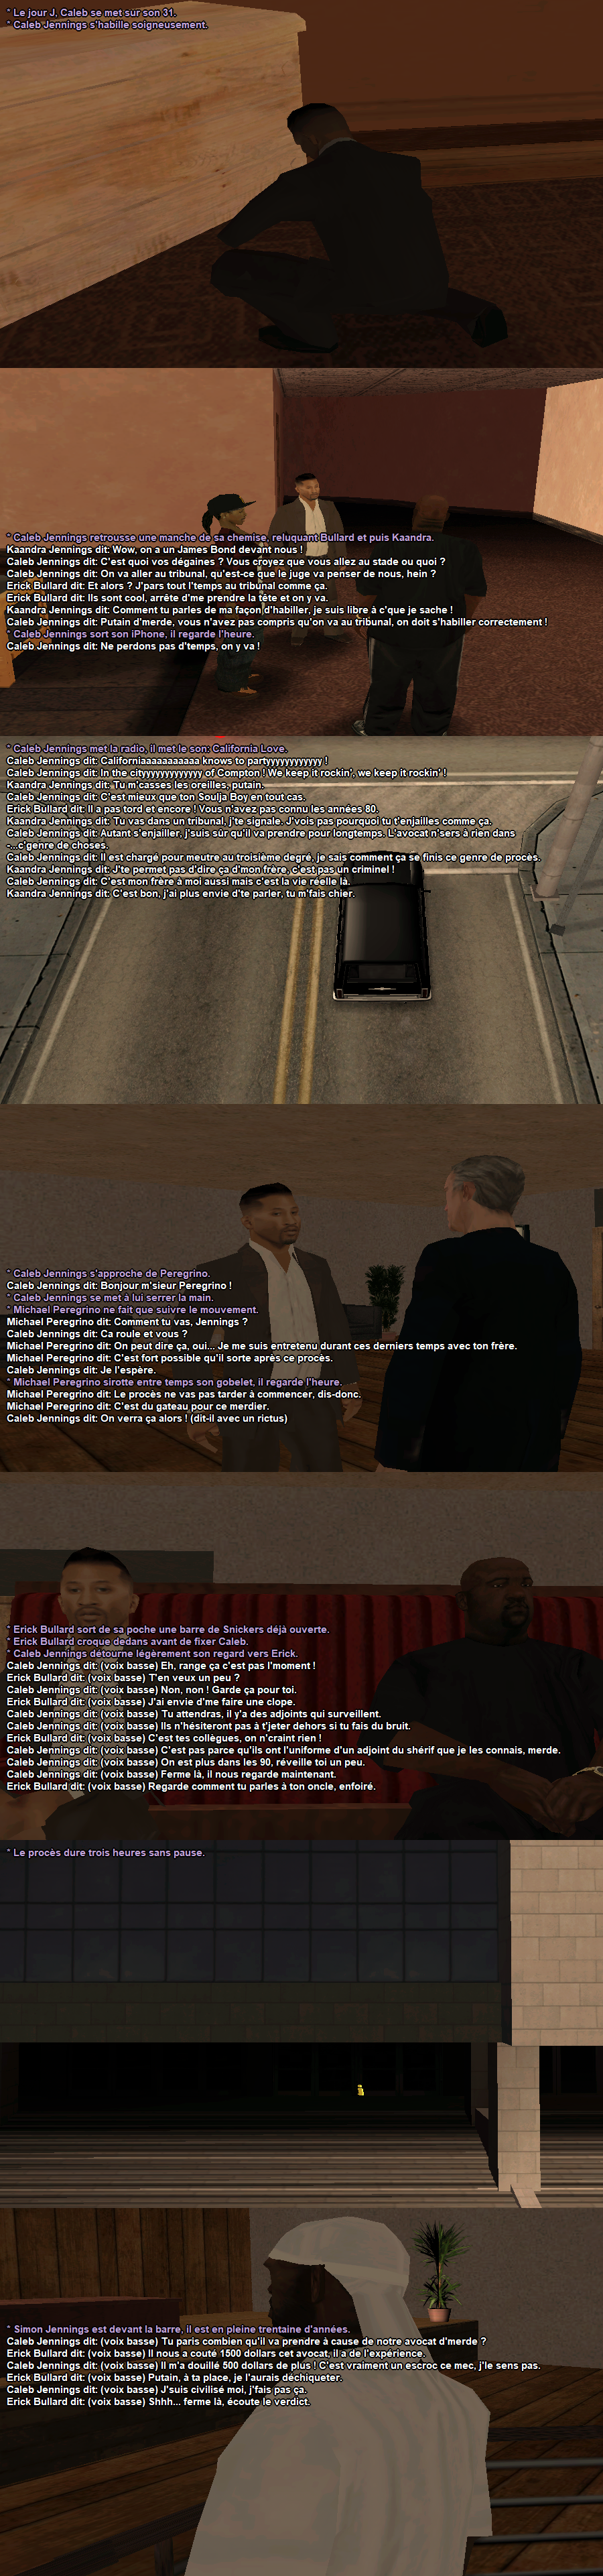 Los Santos Sheriff's Department - A tradition of service (8) - Page 16 1535548297-a